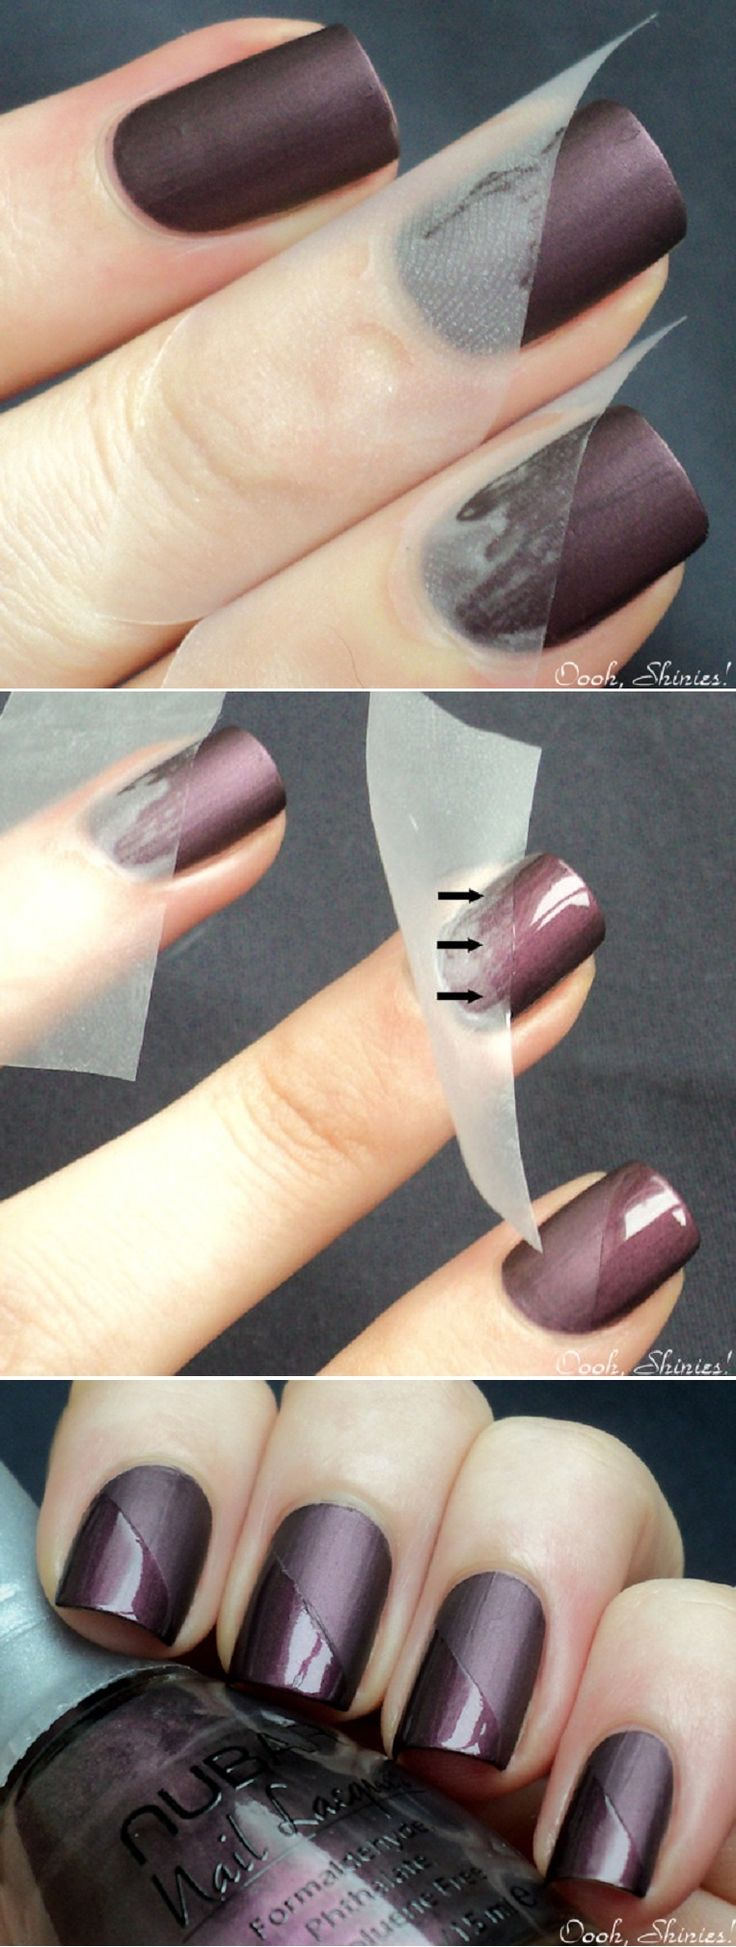 best 25+ chic nails ideas on pinterest | manicures, manicure ideas